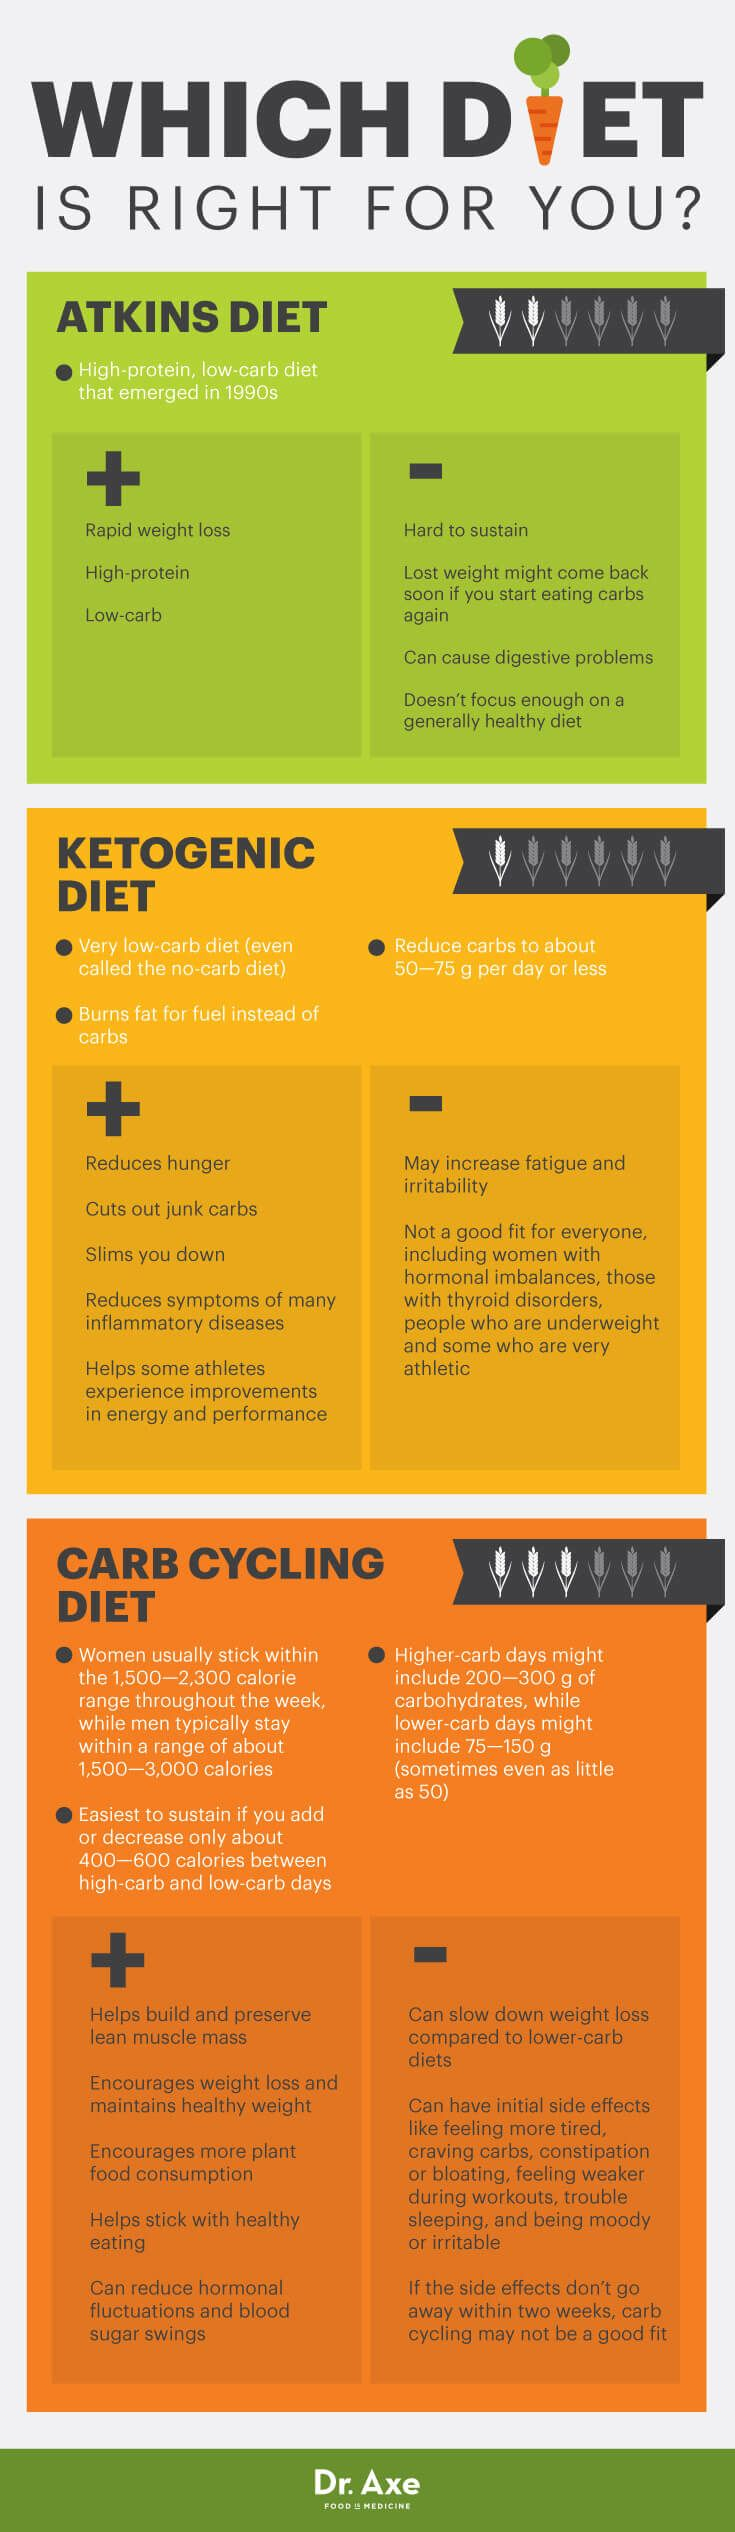 Carb Cycling Diet: The Missing Part of Your Weight-Loss Plan?